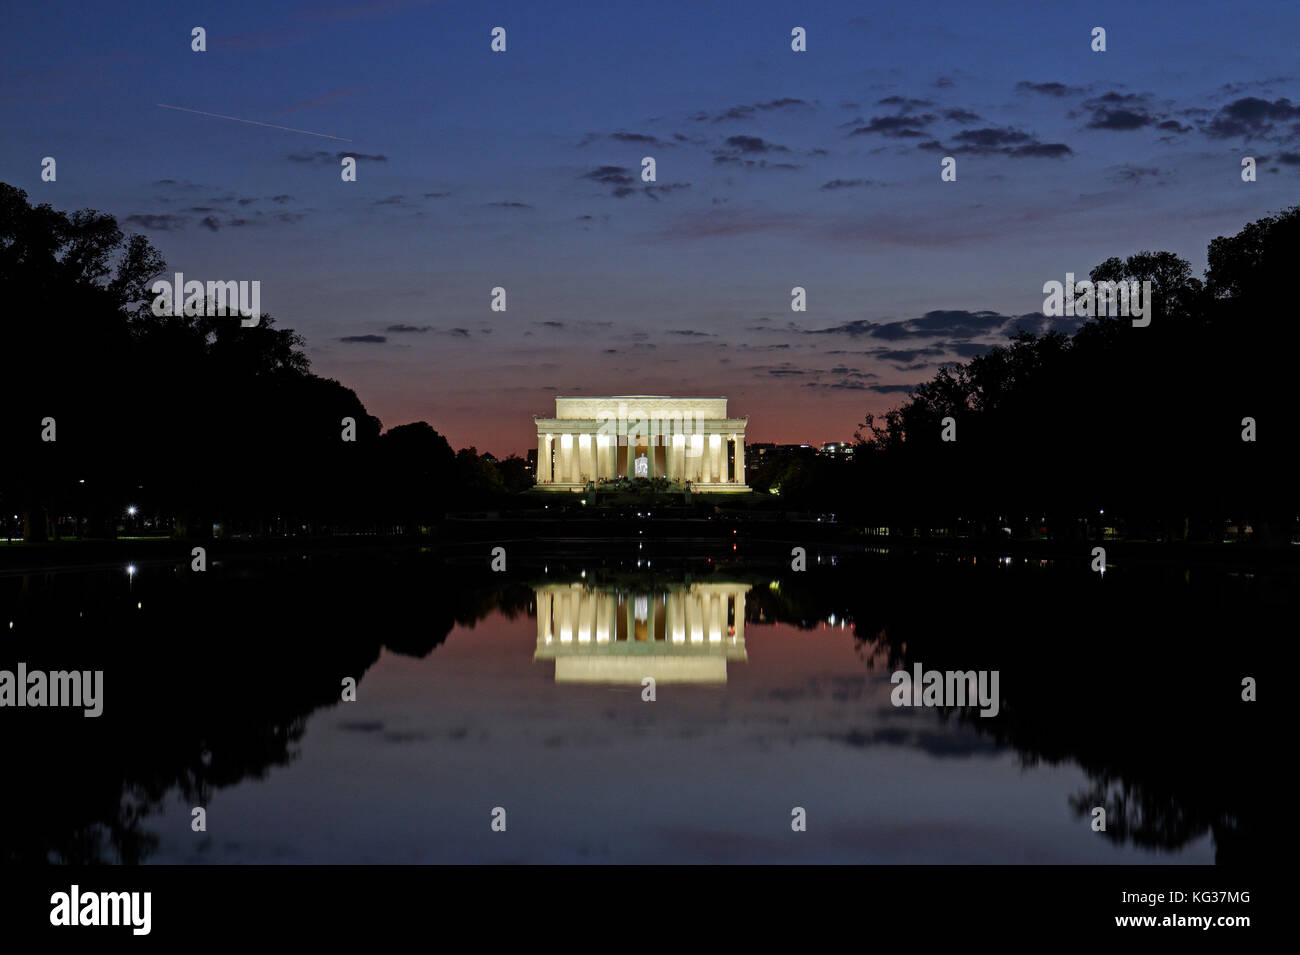 Sunset over the Reflecting Pool and the Lincoln Memorial, Washington DC, United States of America. - Stock Image